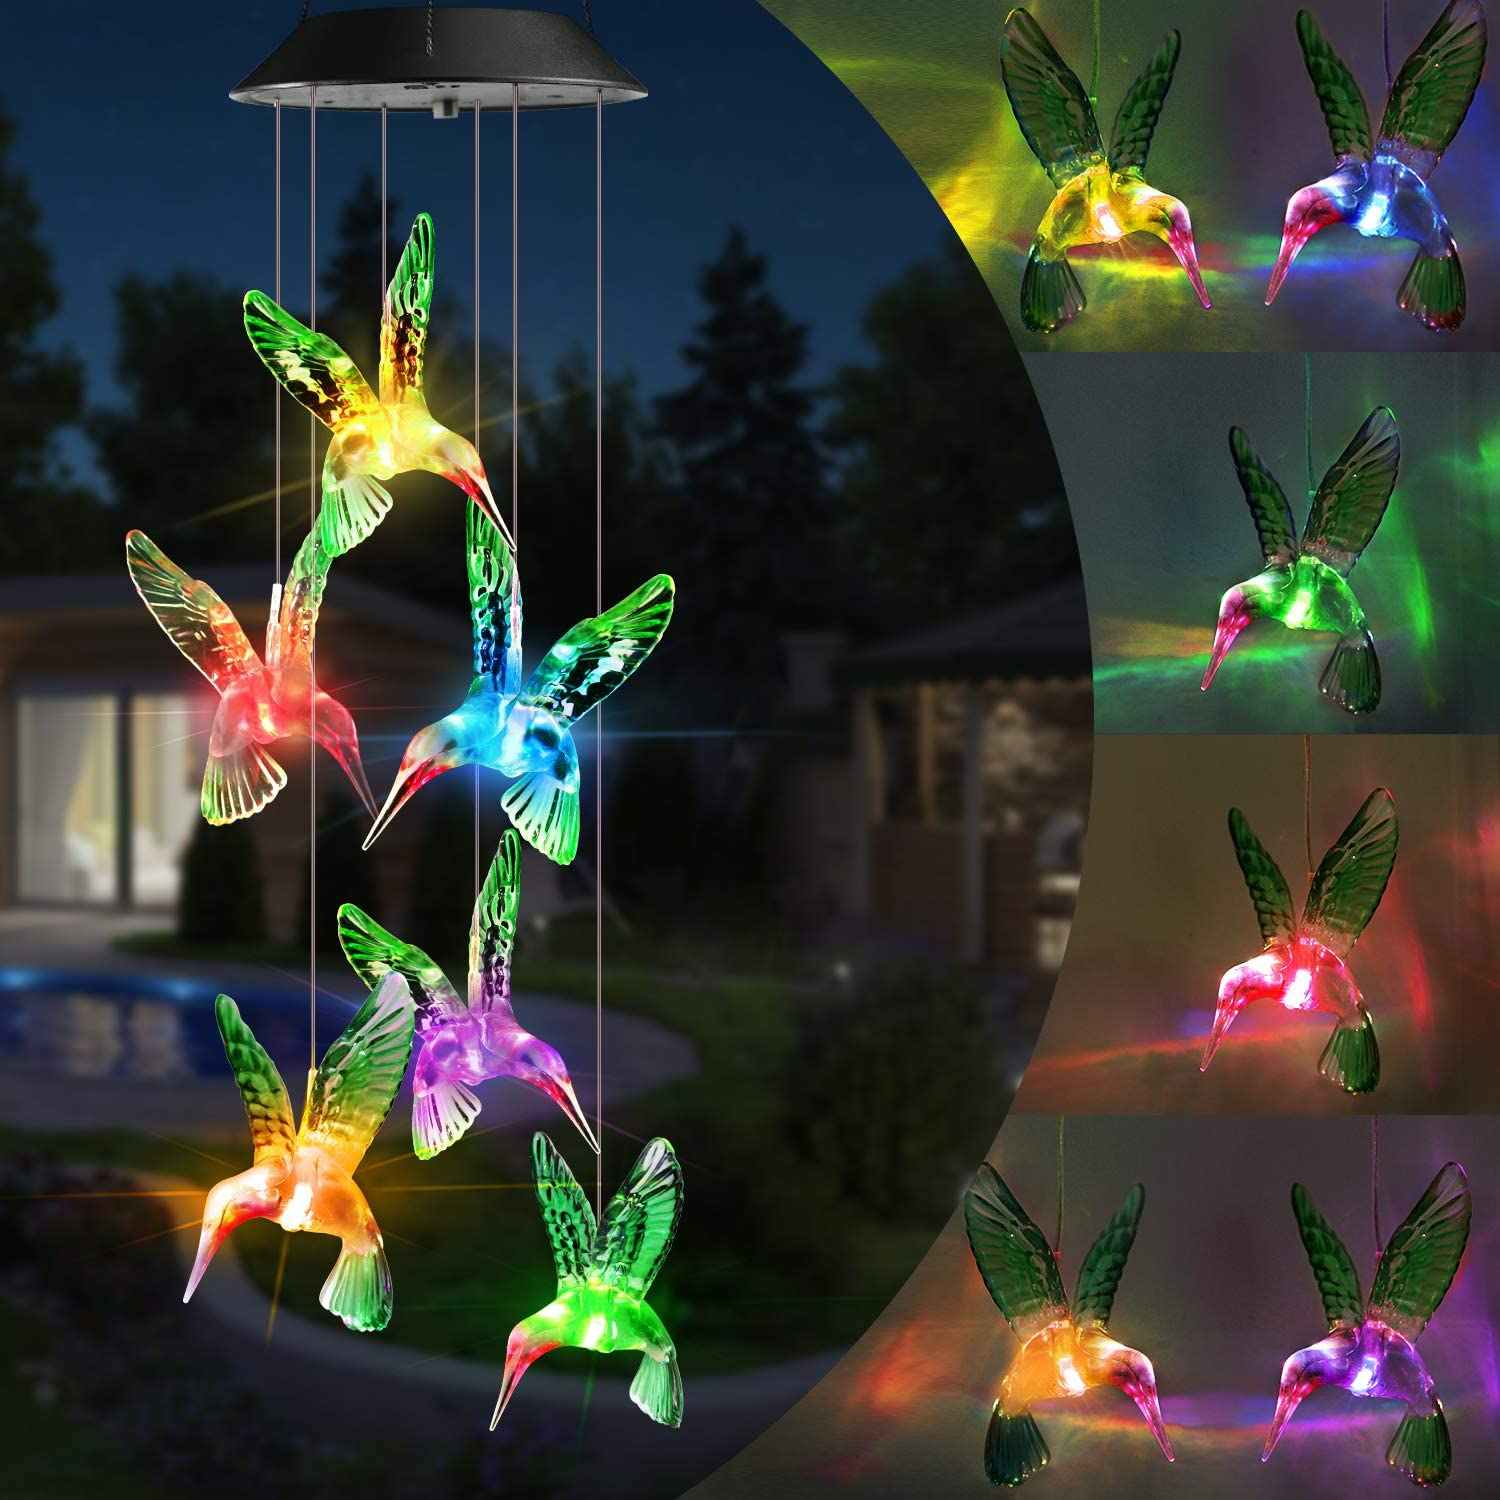 Kleur Veranderende Solar Power Wind Chime Crystal Ball Hummingbird Vlinder Waterdichte Outdoor Windchime Licht Voor Patio Yard Garde